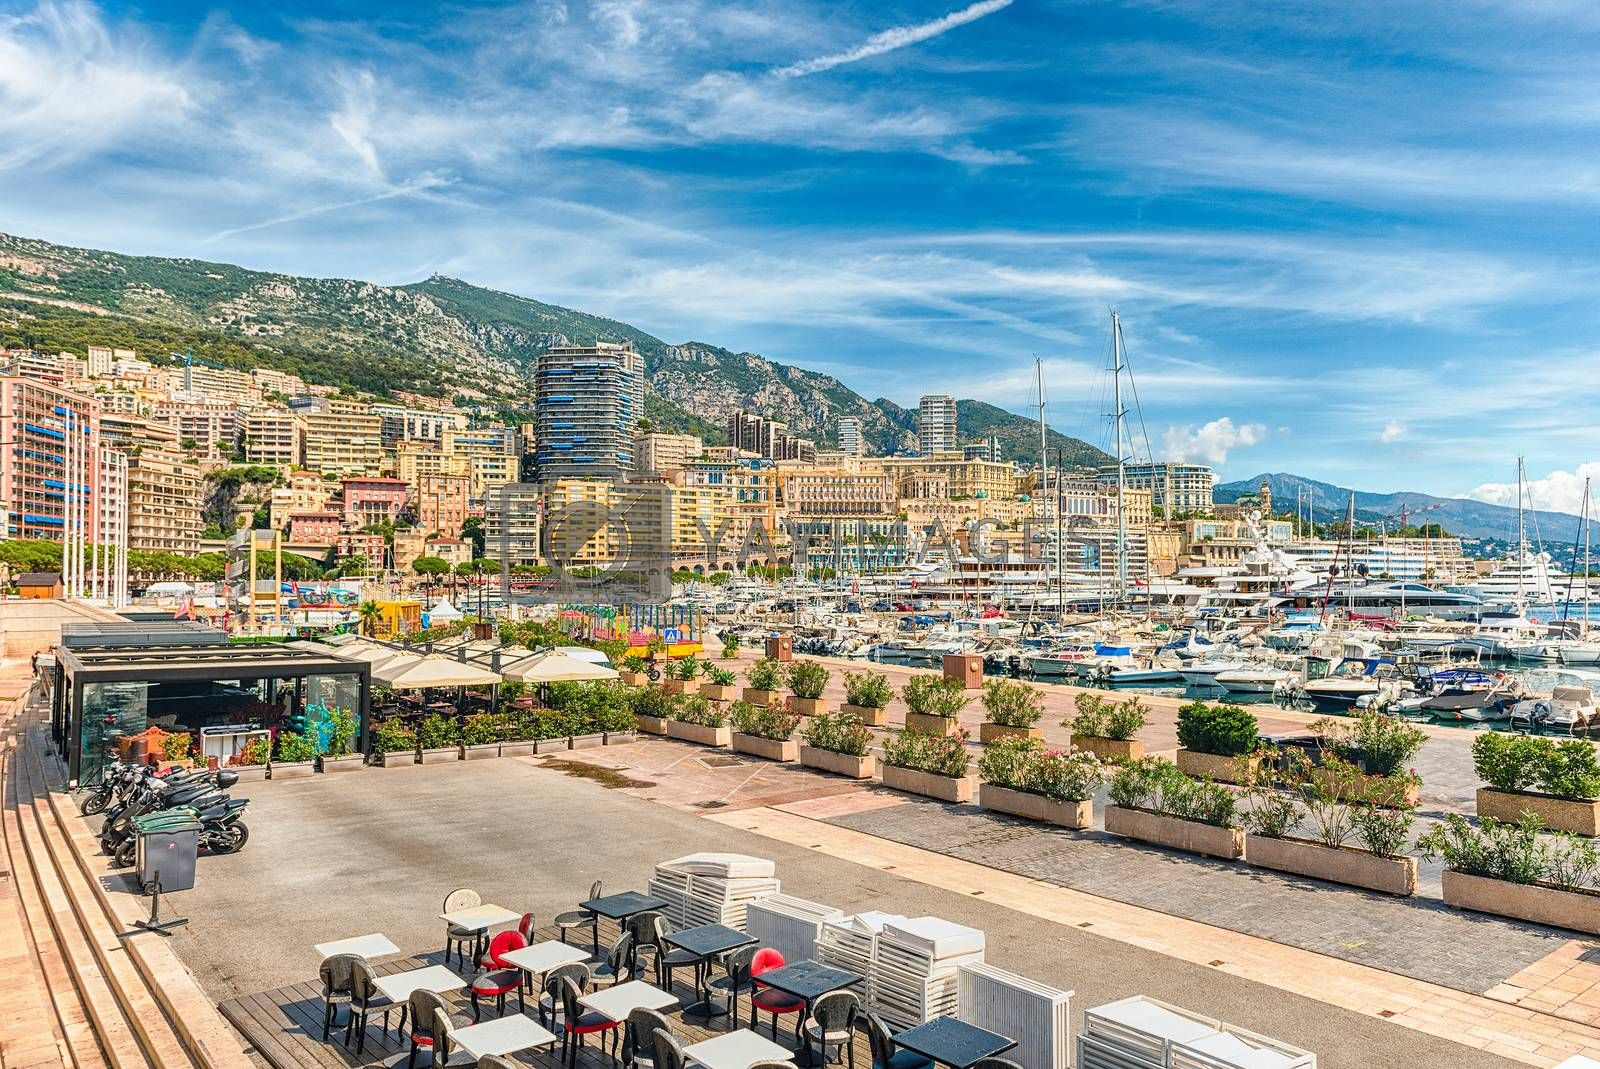 View over luxury yachts and apartments of Port Hercules in La Condamine district, city centre and harbour of Monte Carlo, Cote d'Azur, Principality of Monaco, iconic landmark of the French Riviera